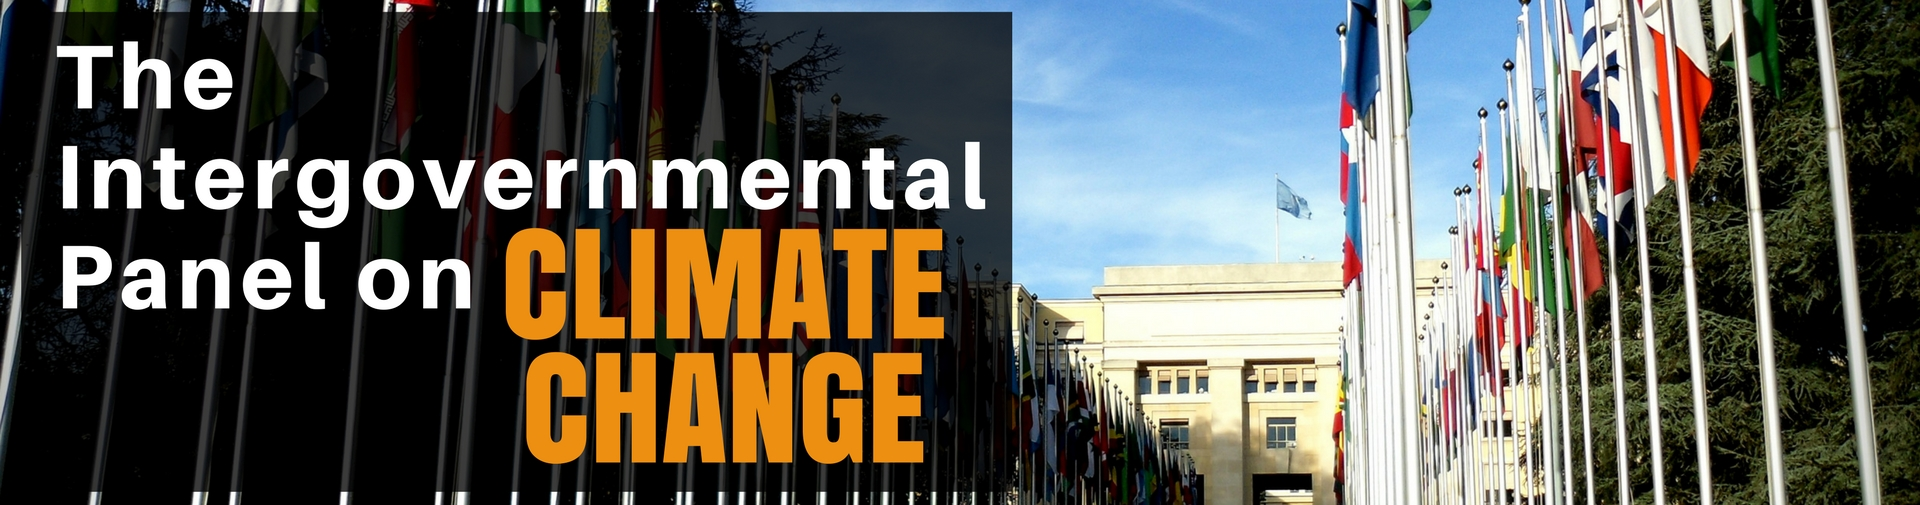 Intergovernnental-Panel-on-Climate-Change-IPCC